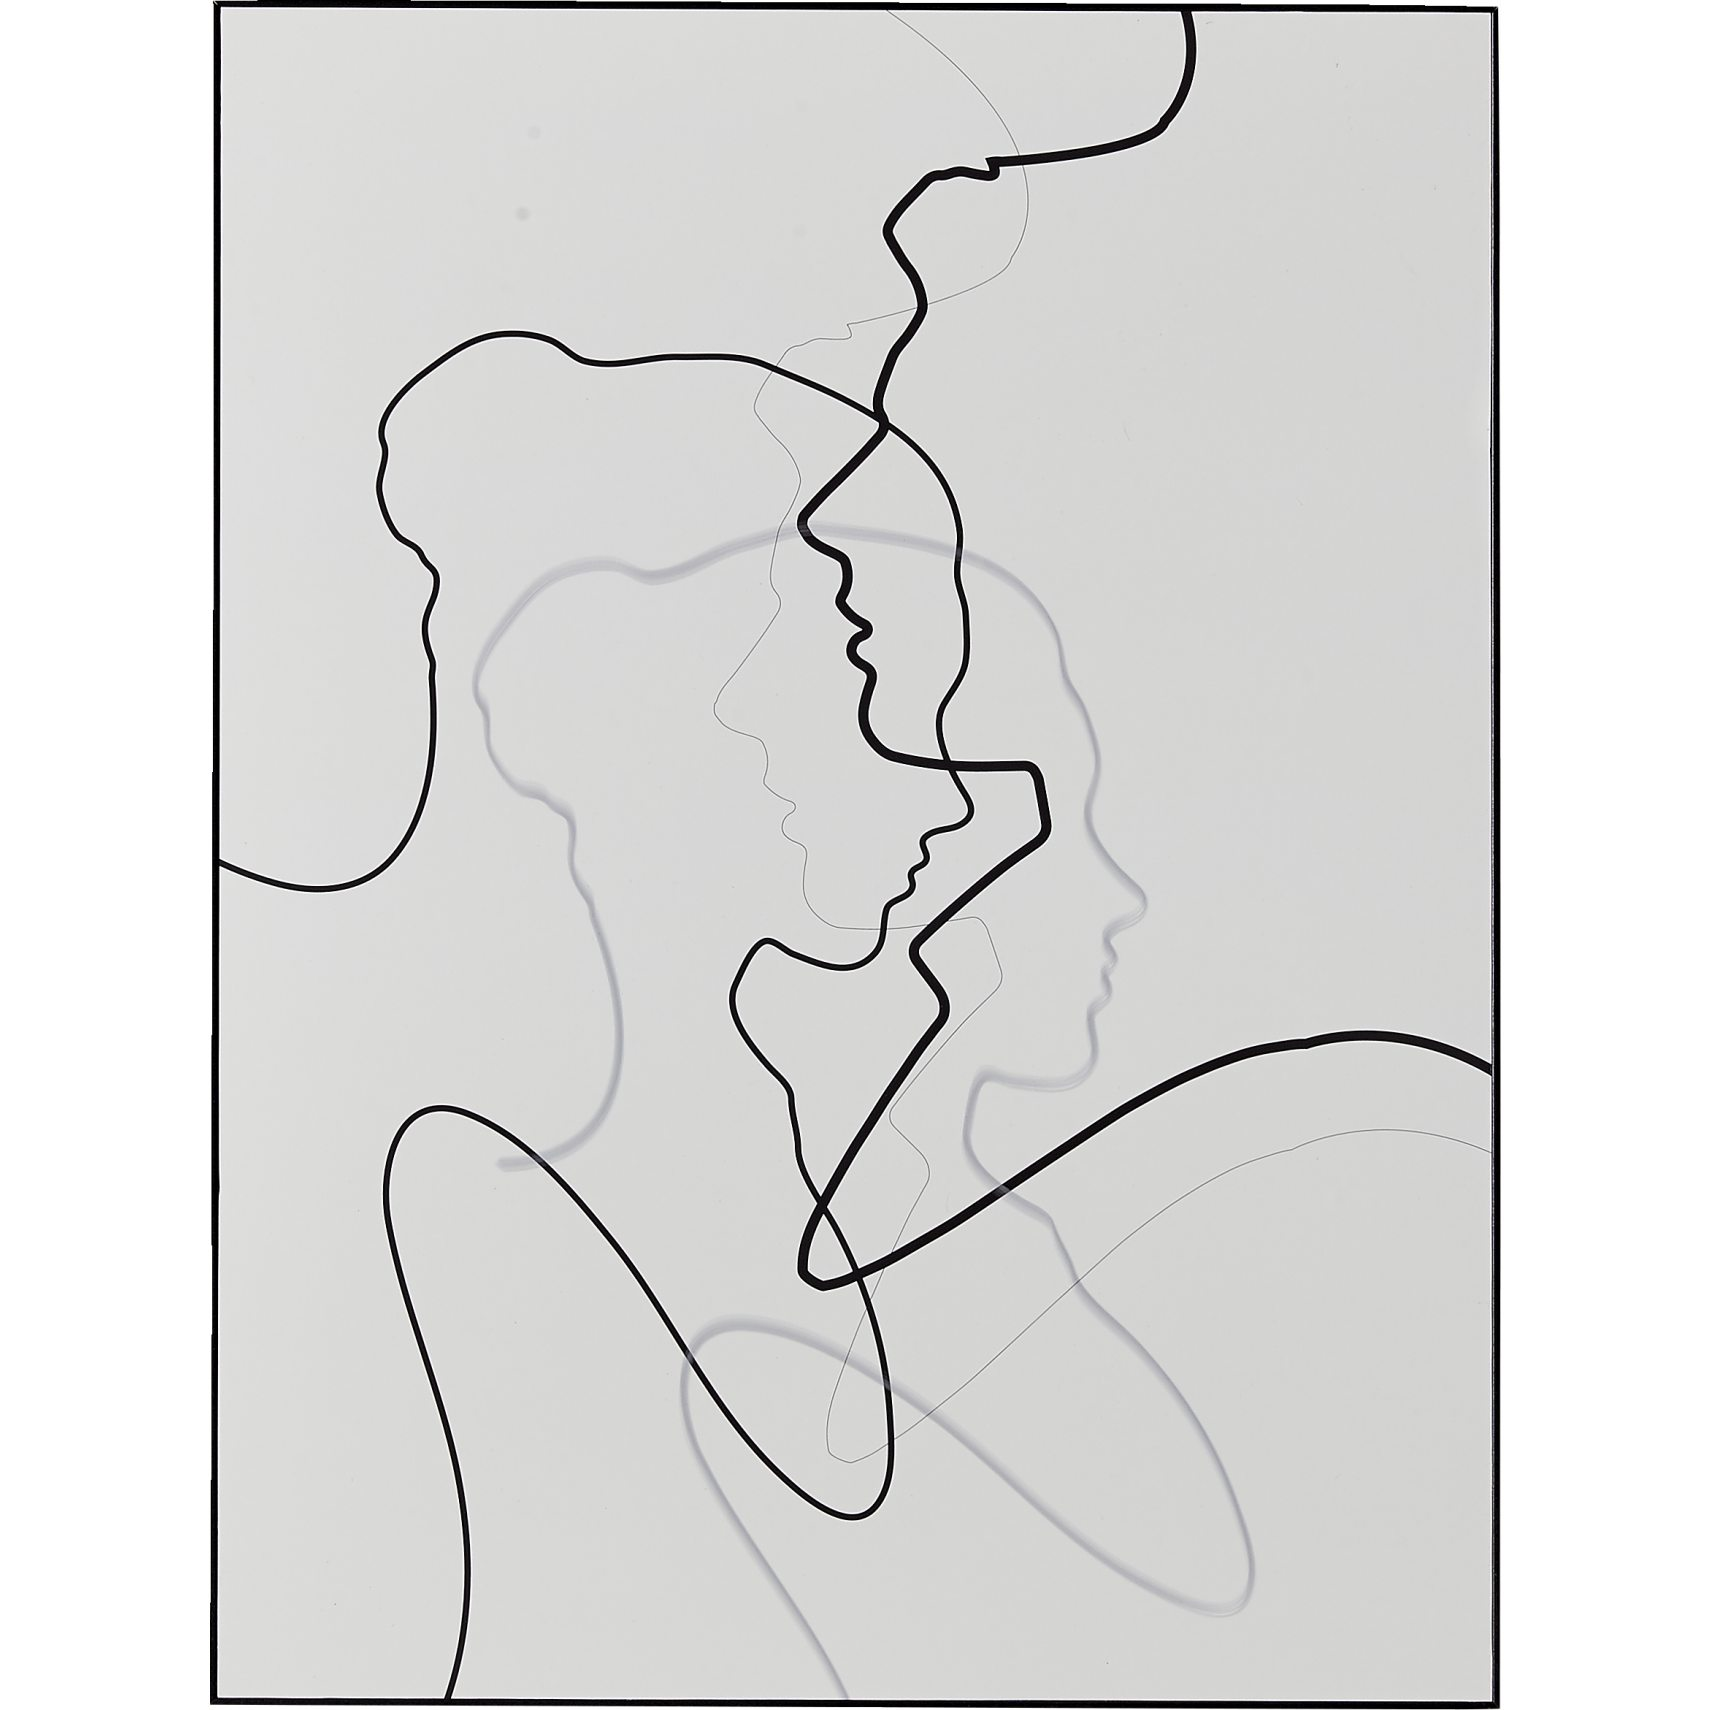 Together Female Plakat 60 x 80 x 7 cm - Blank